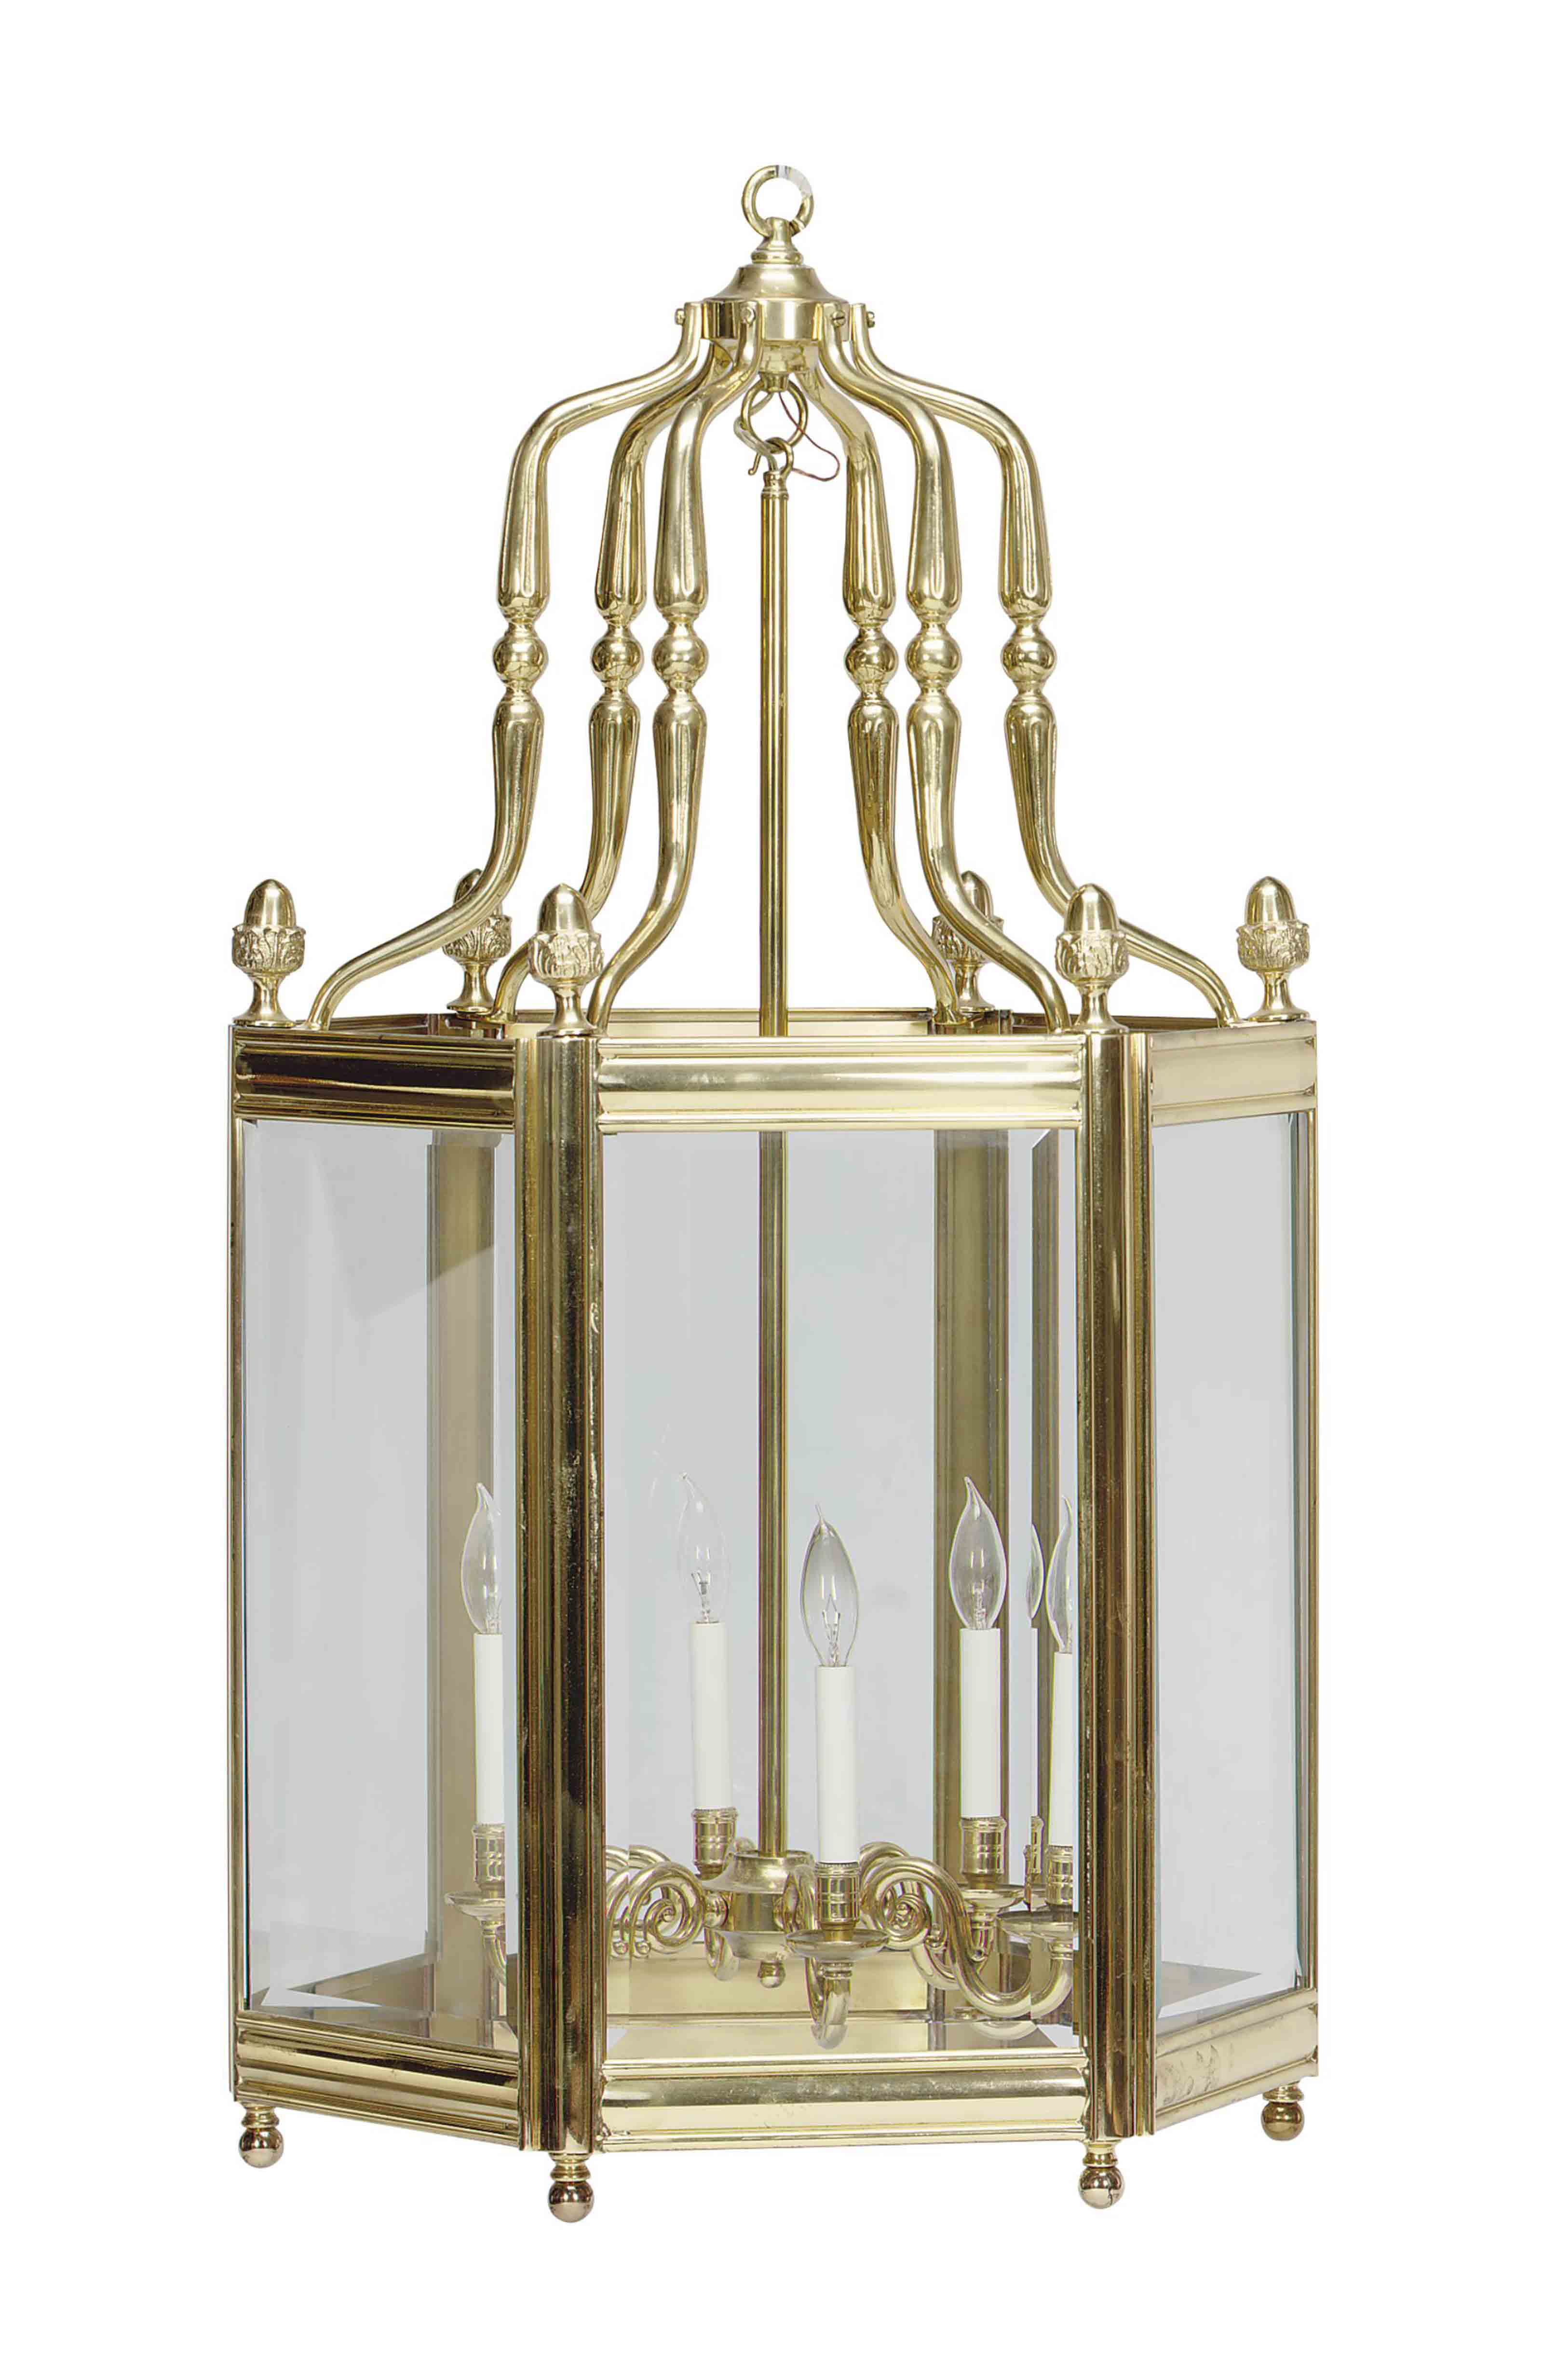 A LARGE BRASS AND GLASS HEXAGO